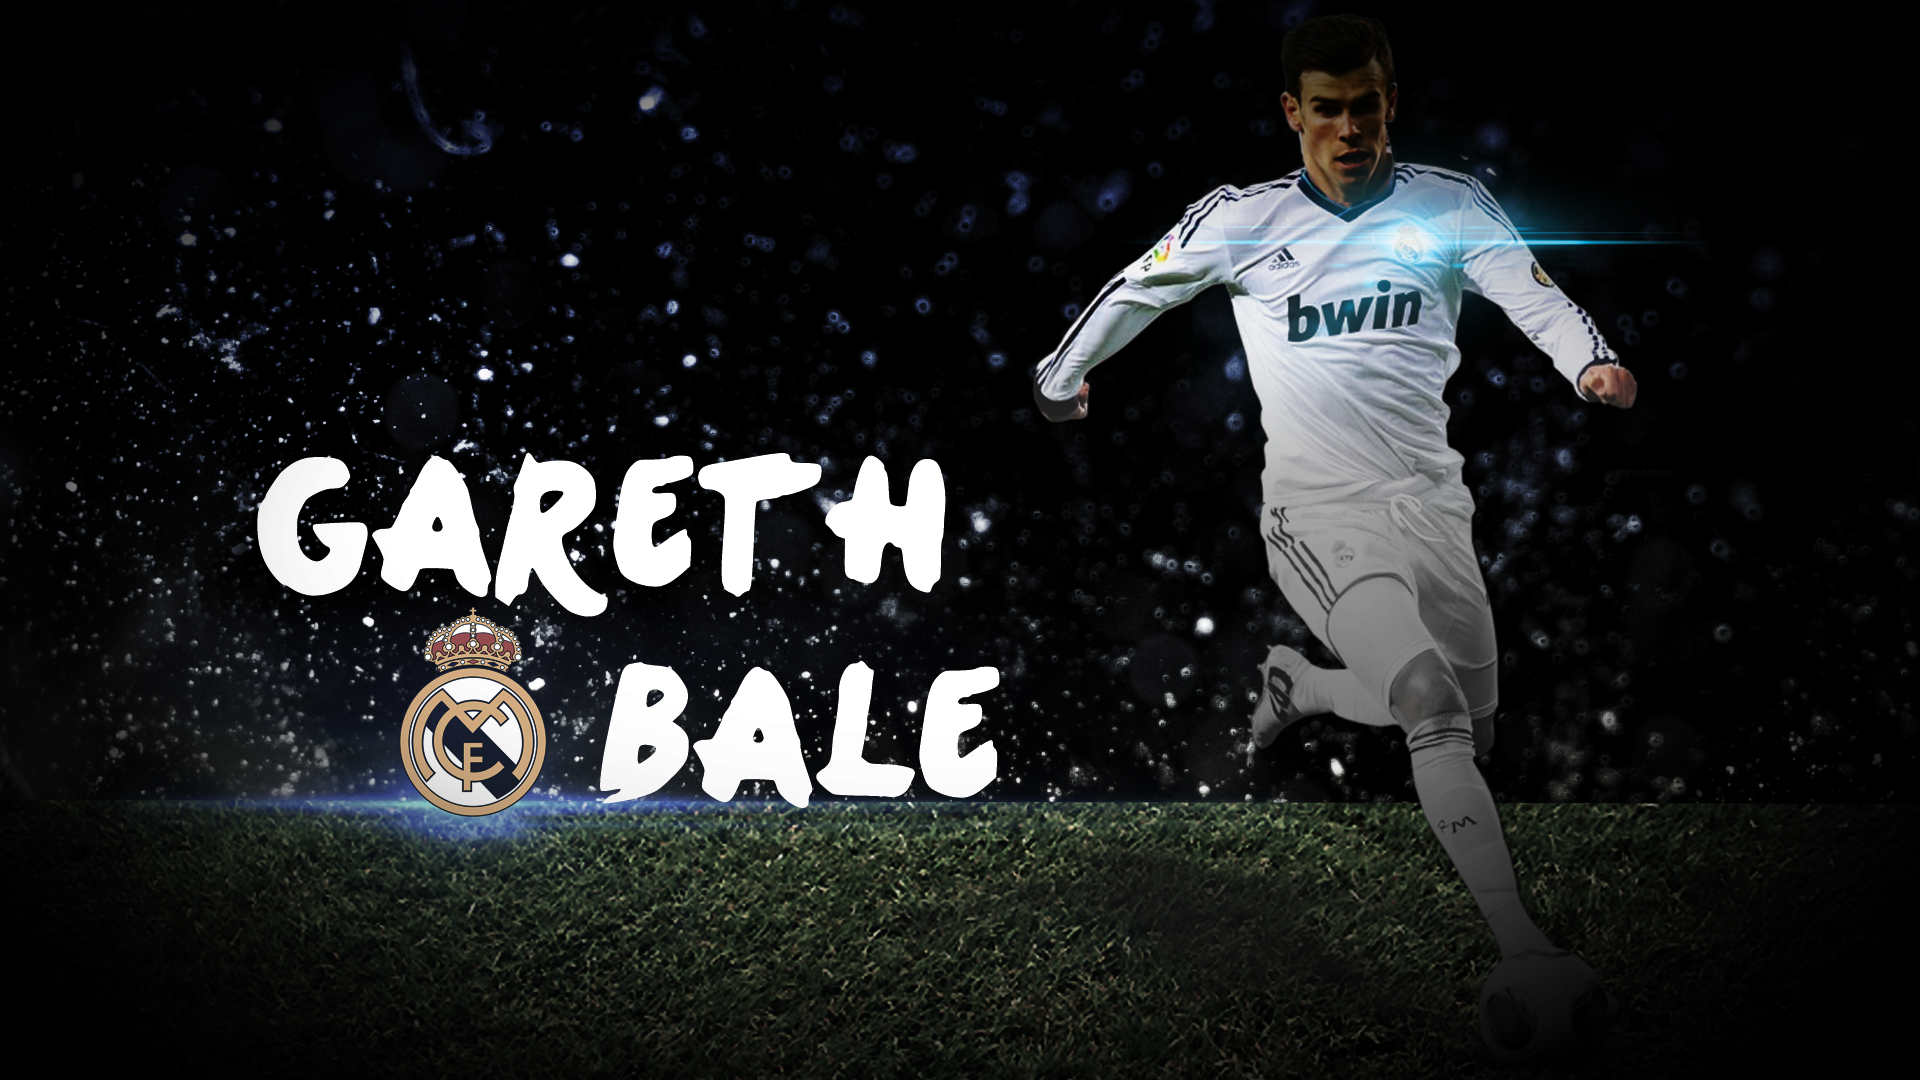 Gareth Bale Wallpapers